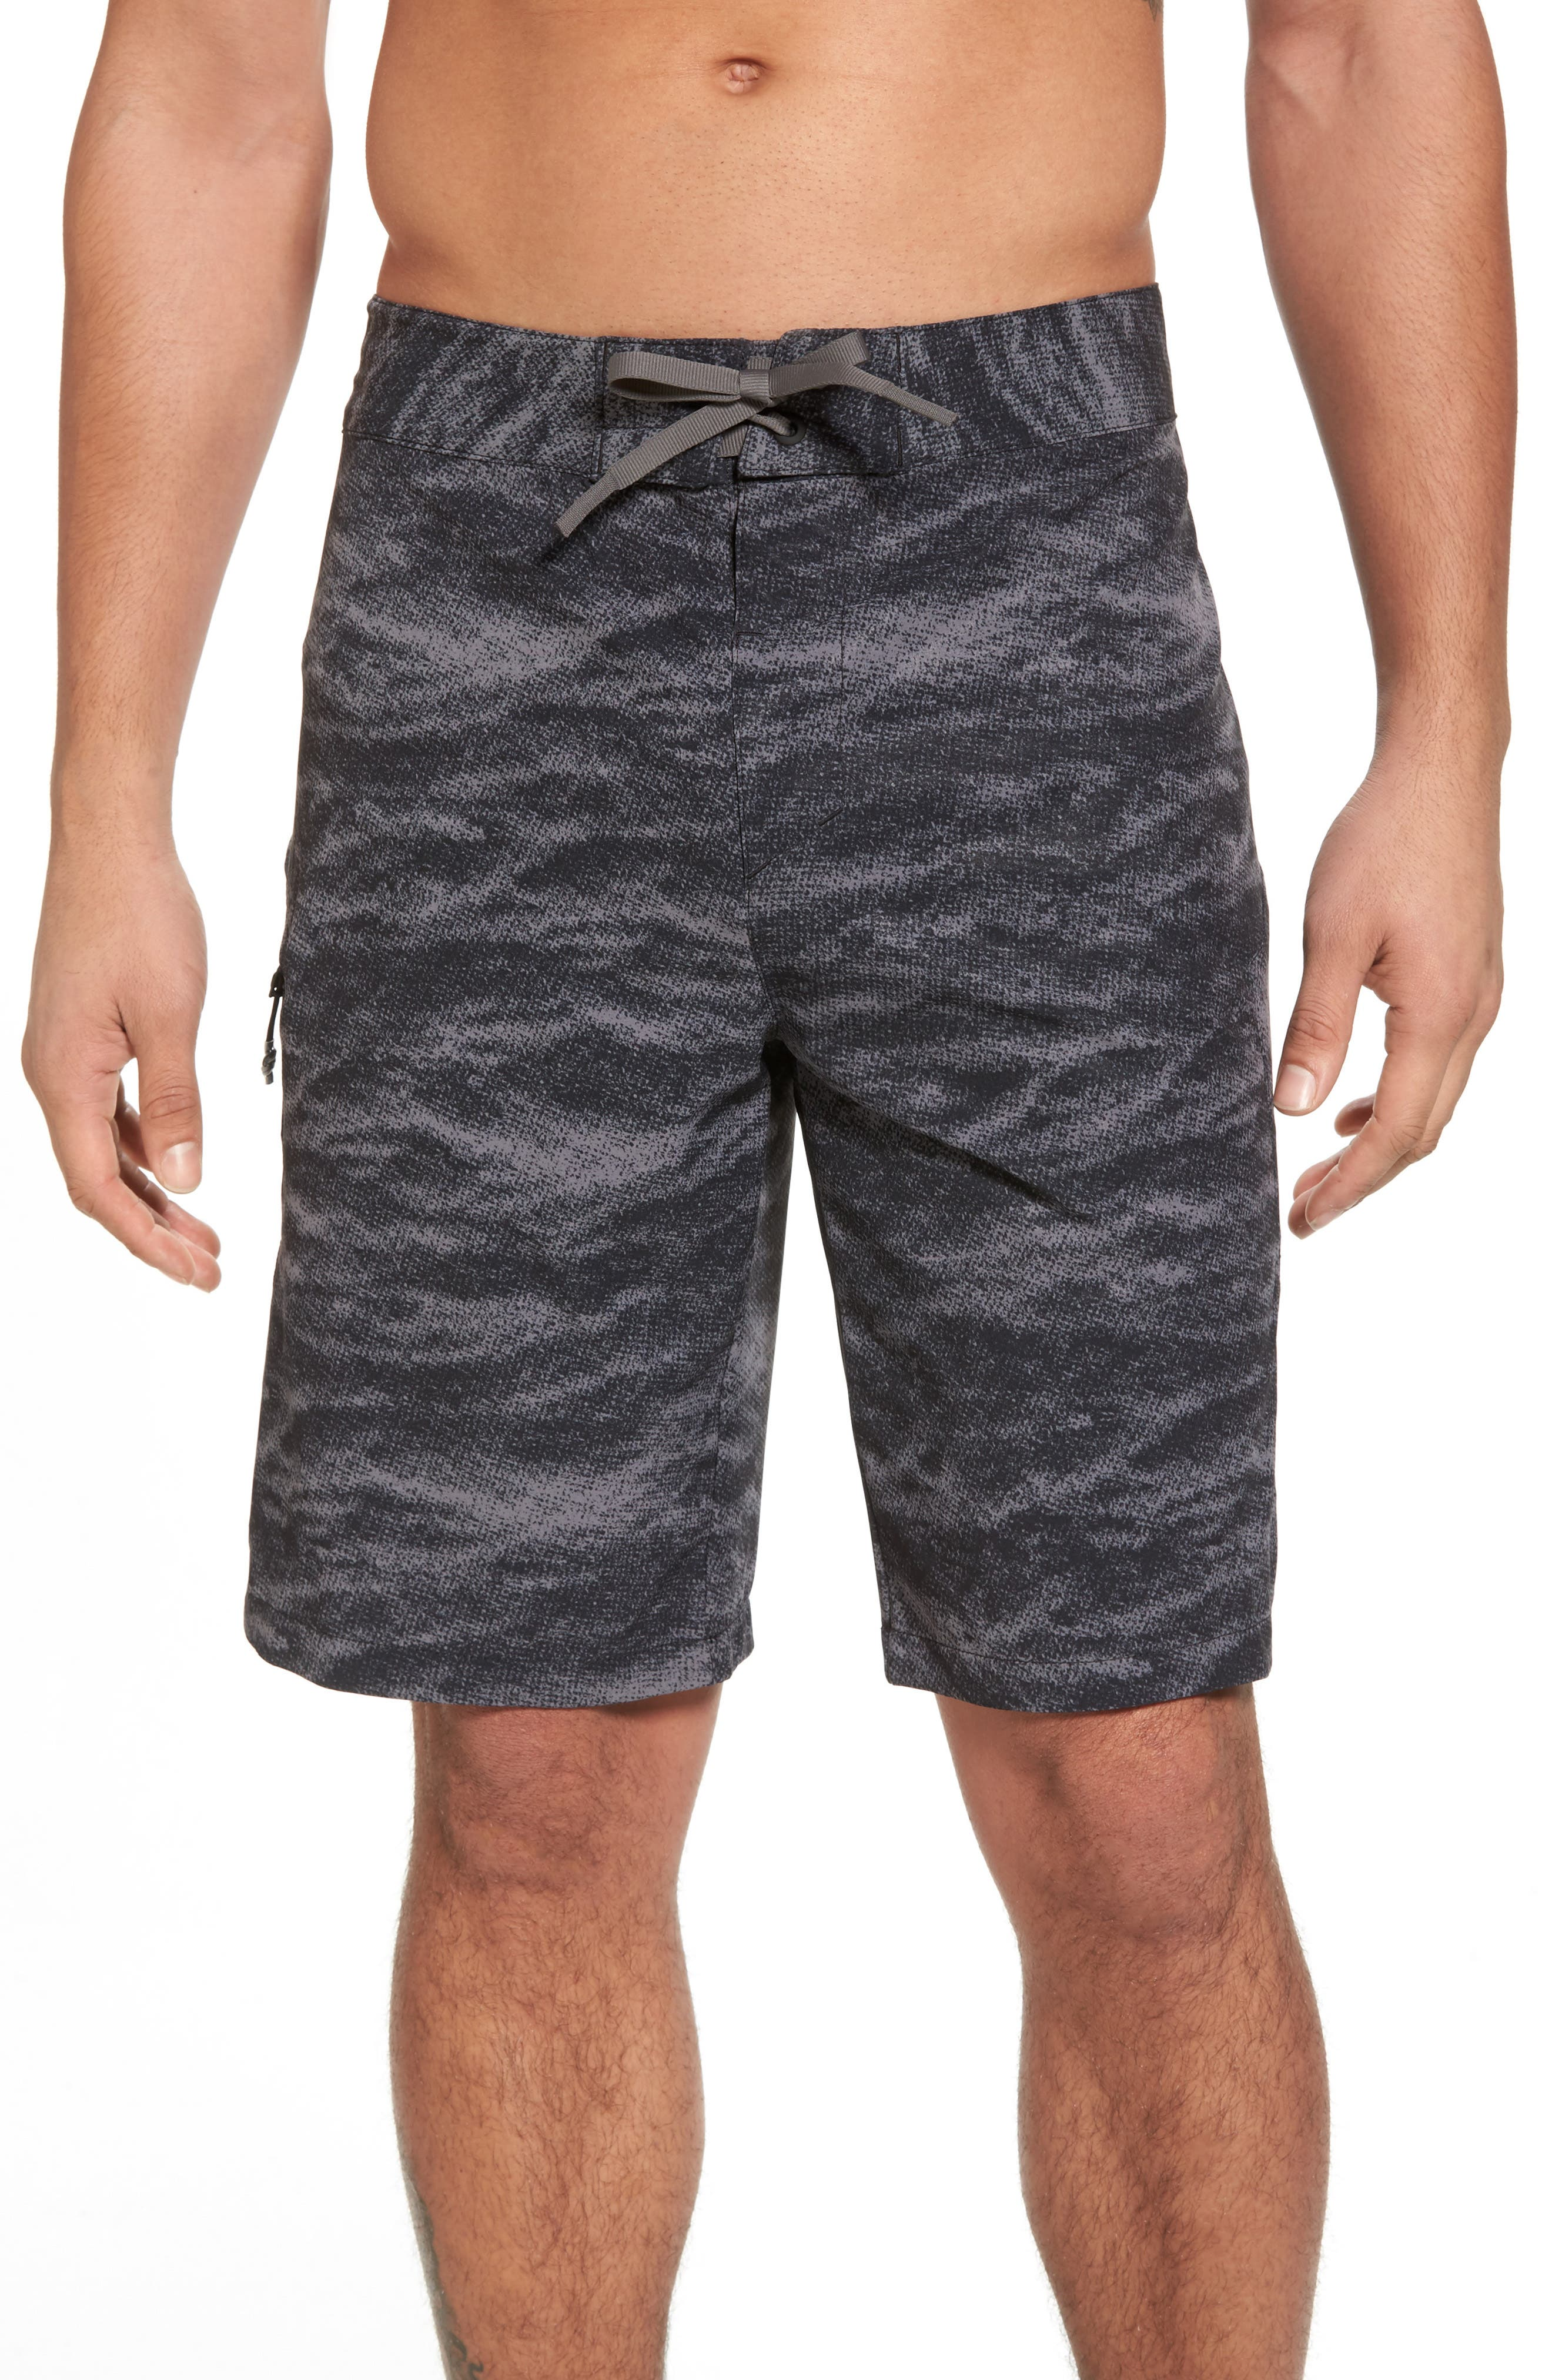 UNDER ARMOUR,                             Print Board Shorts,                             Main thumbnail 1, color,                             004